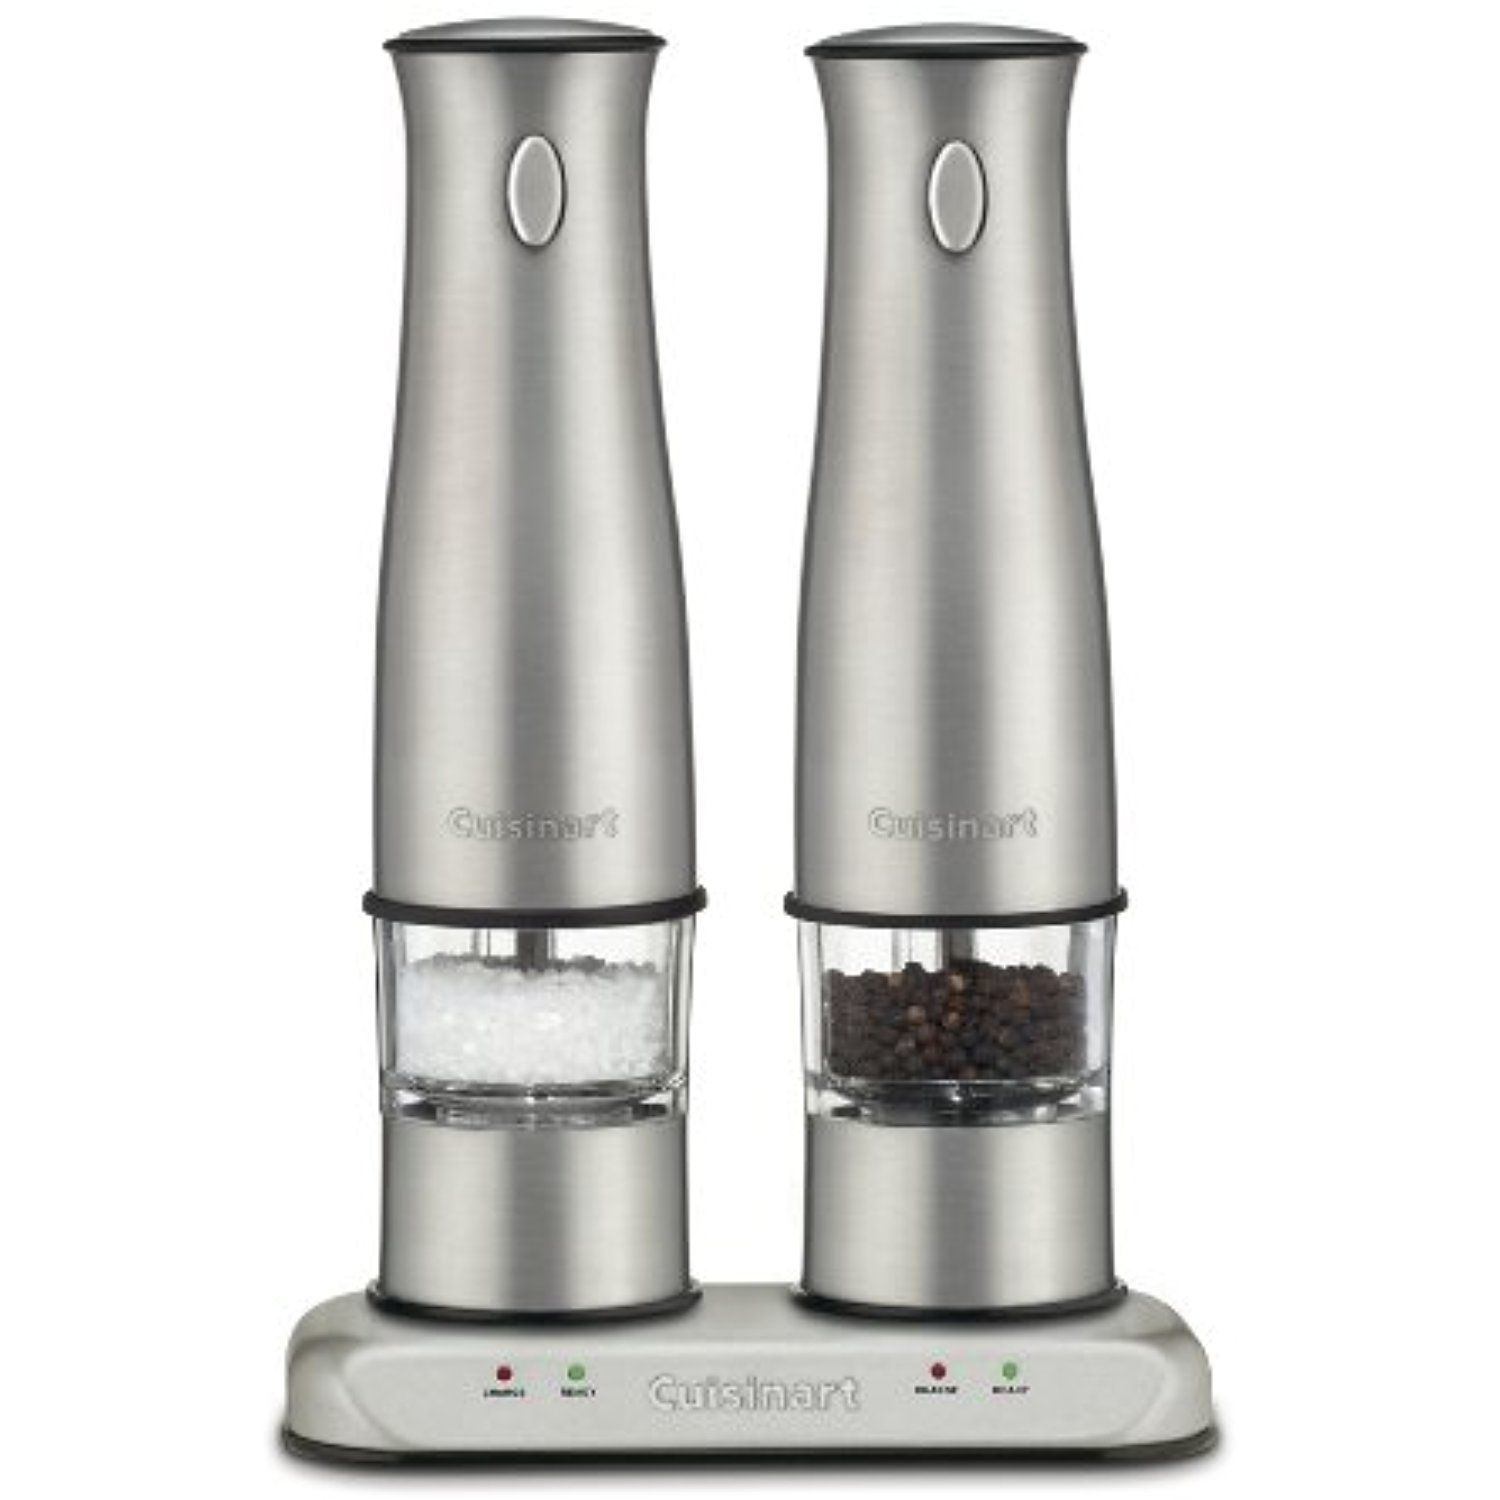 Cuisinart Sp 2 Stainless Steel Rechargeable Salt And Pepper Mills Click Image To Review More Details This Is An Affiliate Link Kitch With Images Salt And Pepper Mills